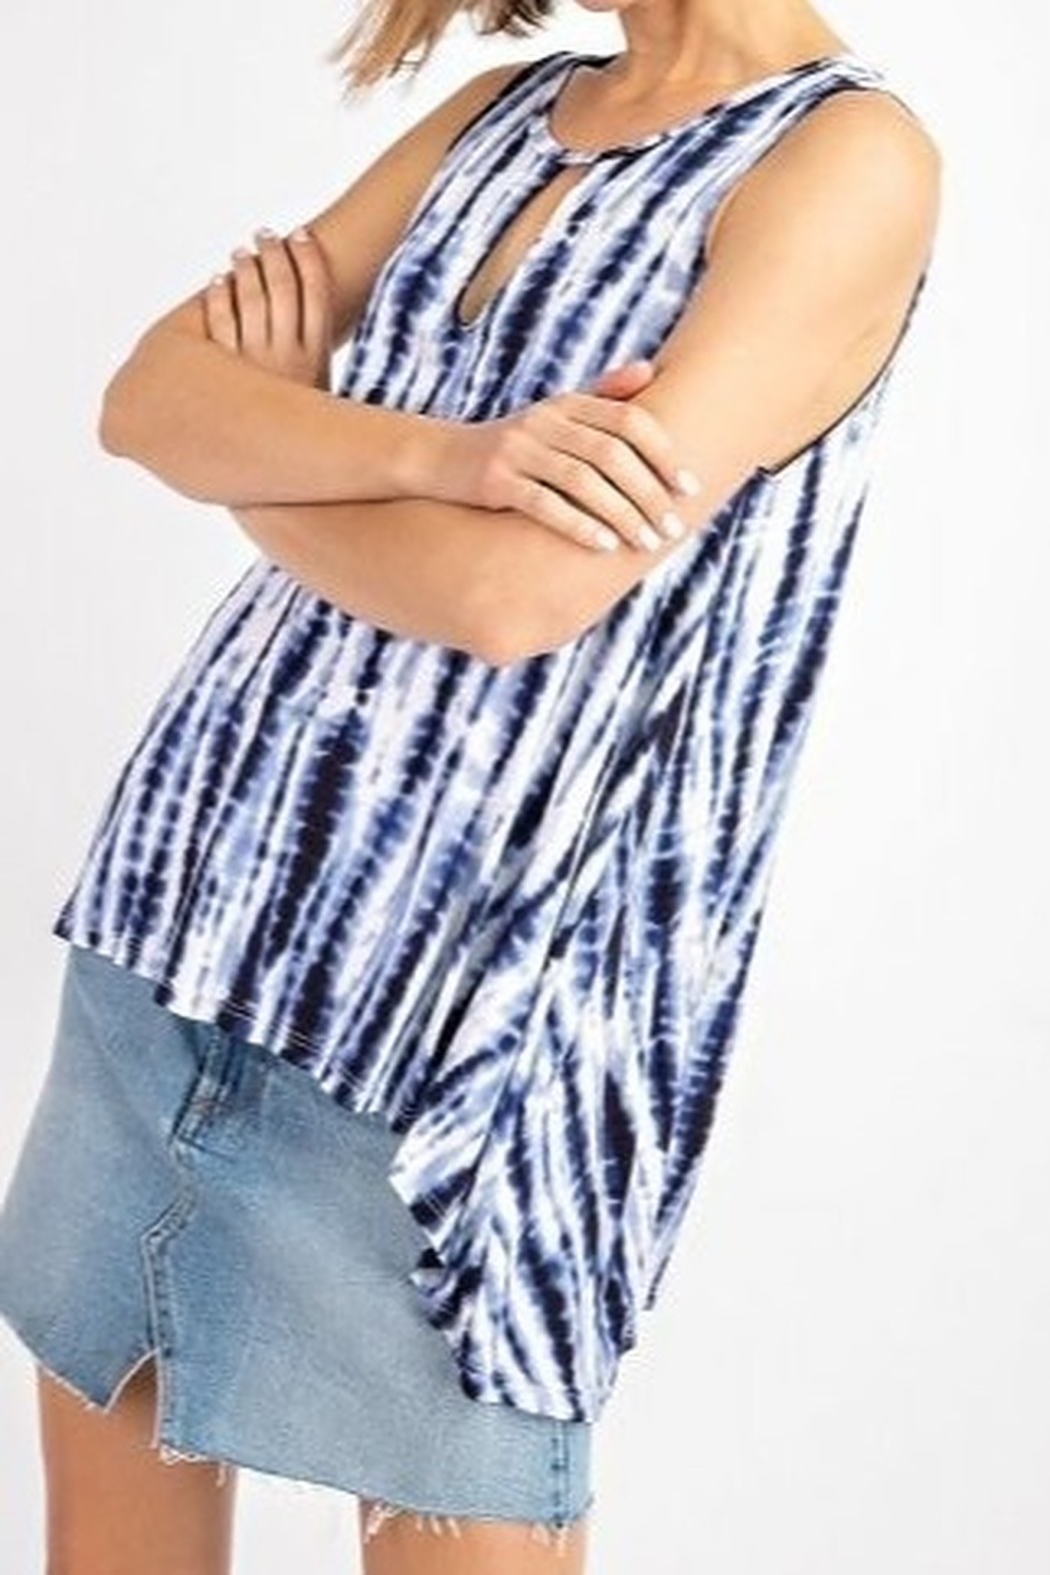 143 Story Blue and white sleeveless tie dye knit top - Front Full Image